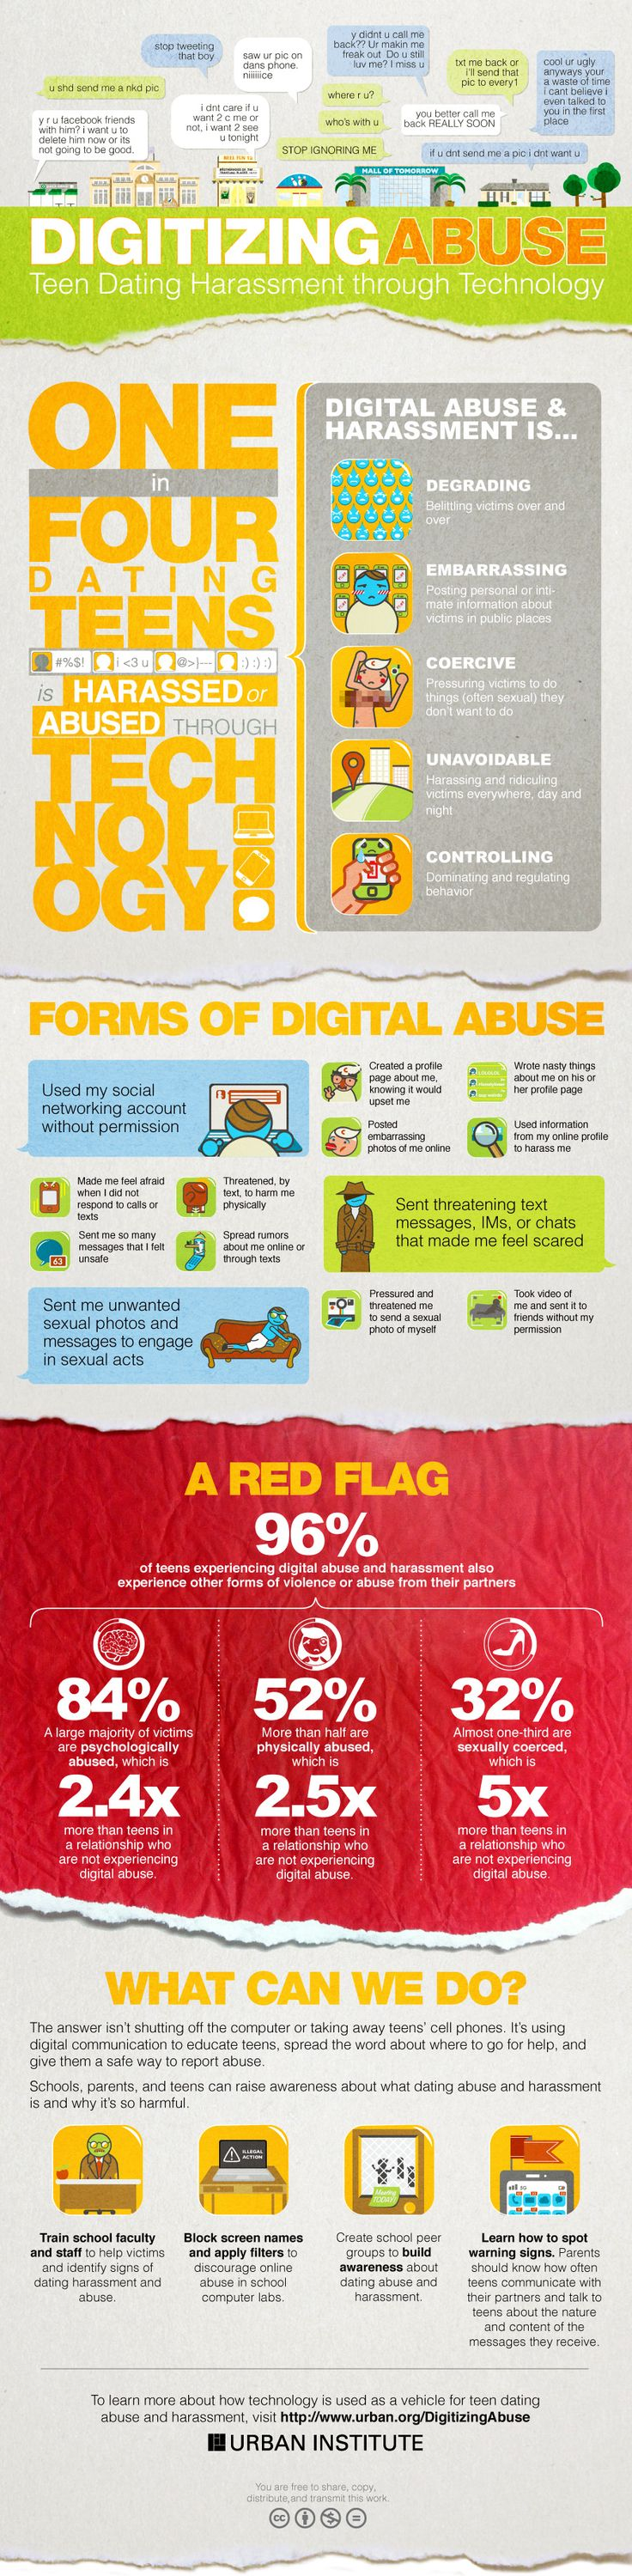 Digitizing Abuse Infographic